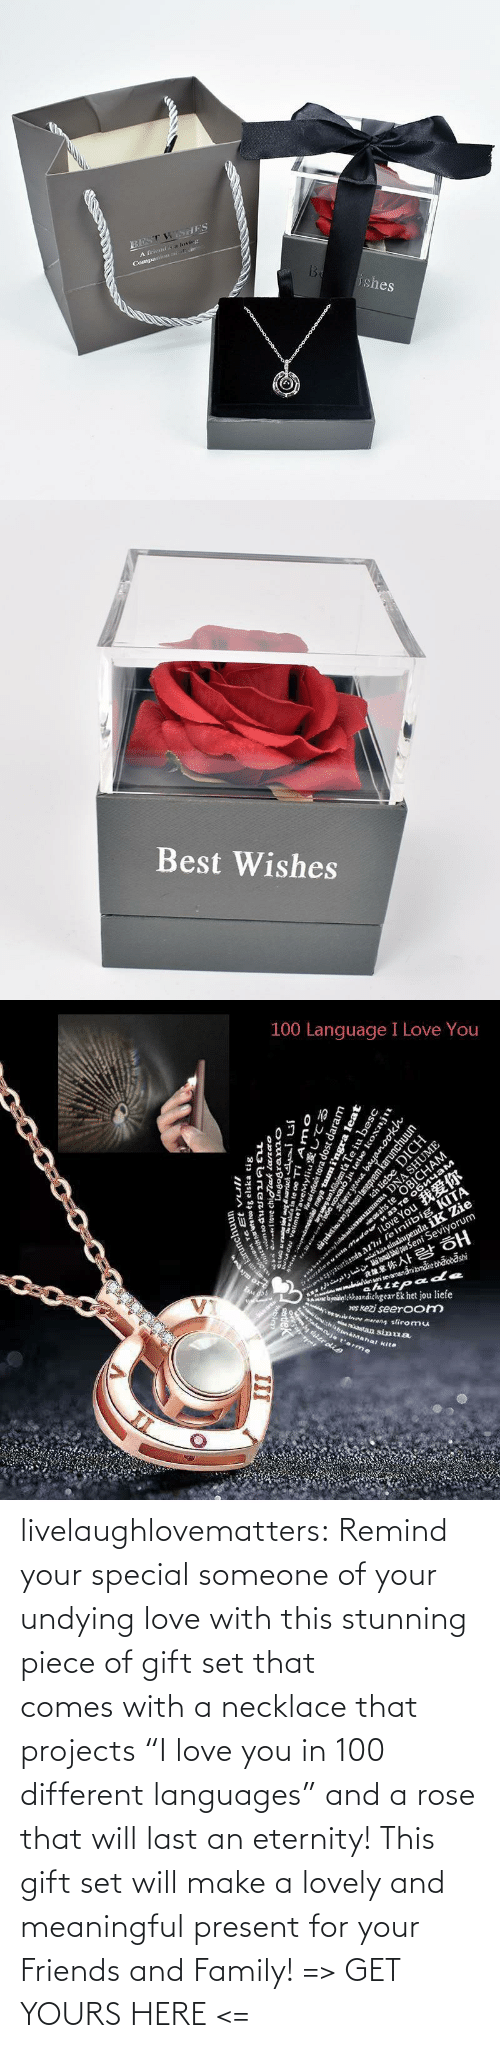 "Comes: livelaughlovematters:  Remind your special someone of your undying love with this stunning piece of gift set that comes with a necklace that projects ""I love you in 100 different languages"" and a rose that will last an eternity! This gift set will make a lovely and meaningful present for your Friends and Family! => GET YOURS HERE <="